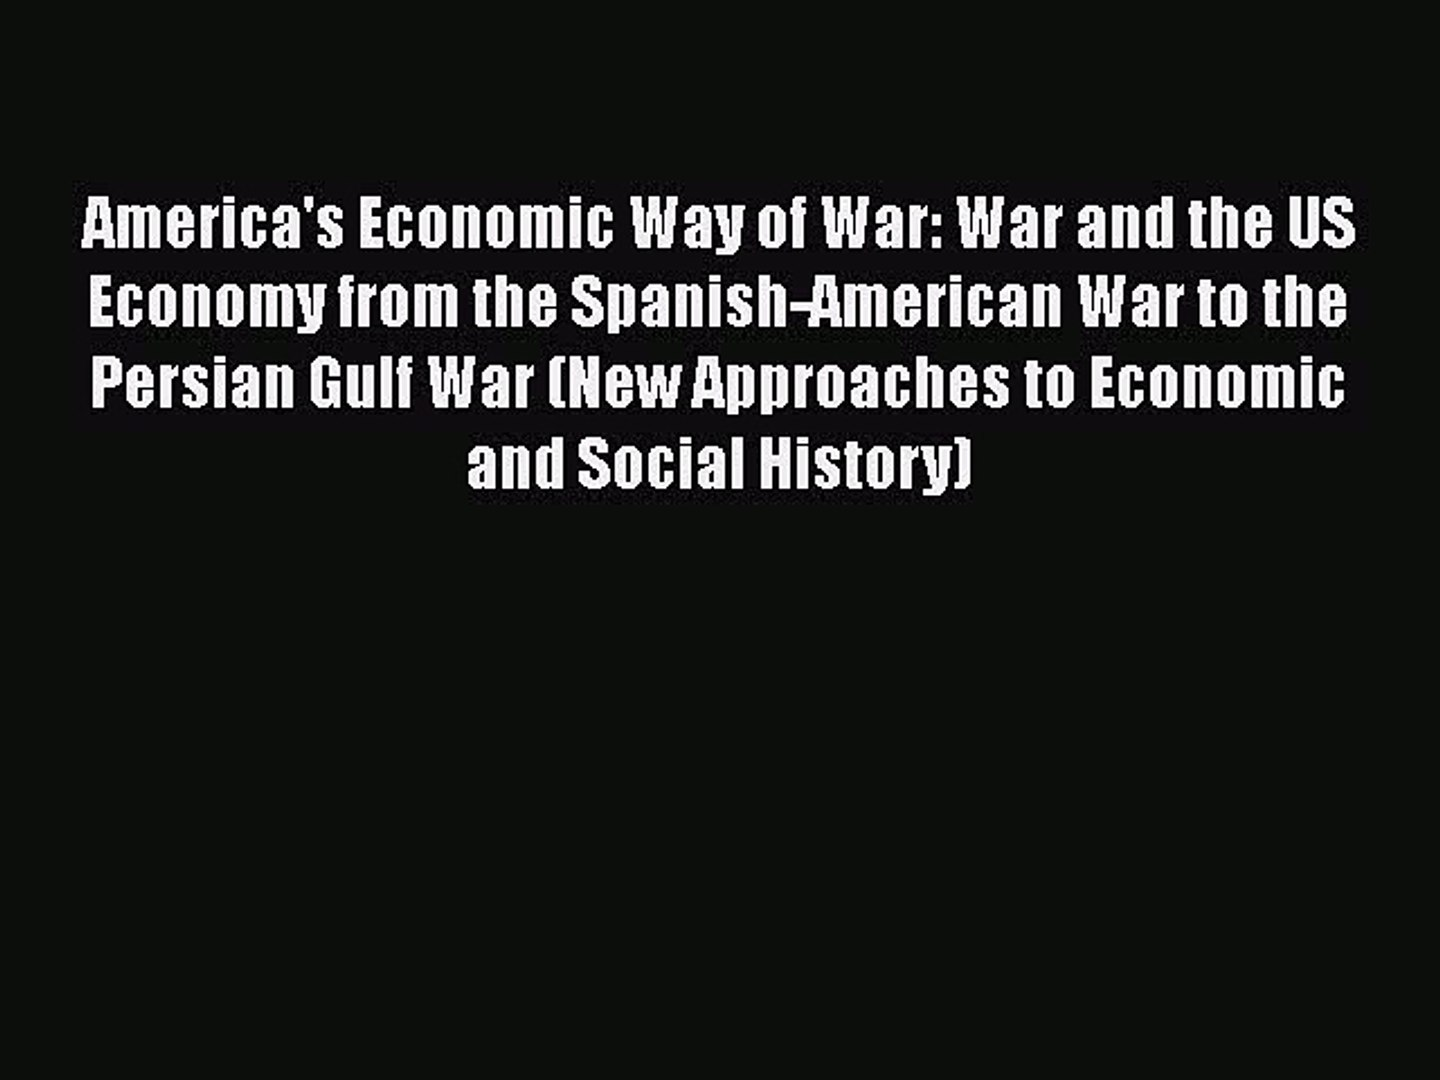 America's Economic Way of War: War and the US Economy from the Spanish-American War to the